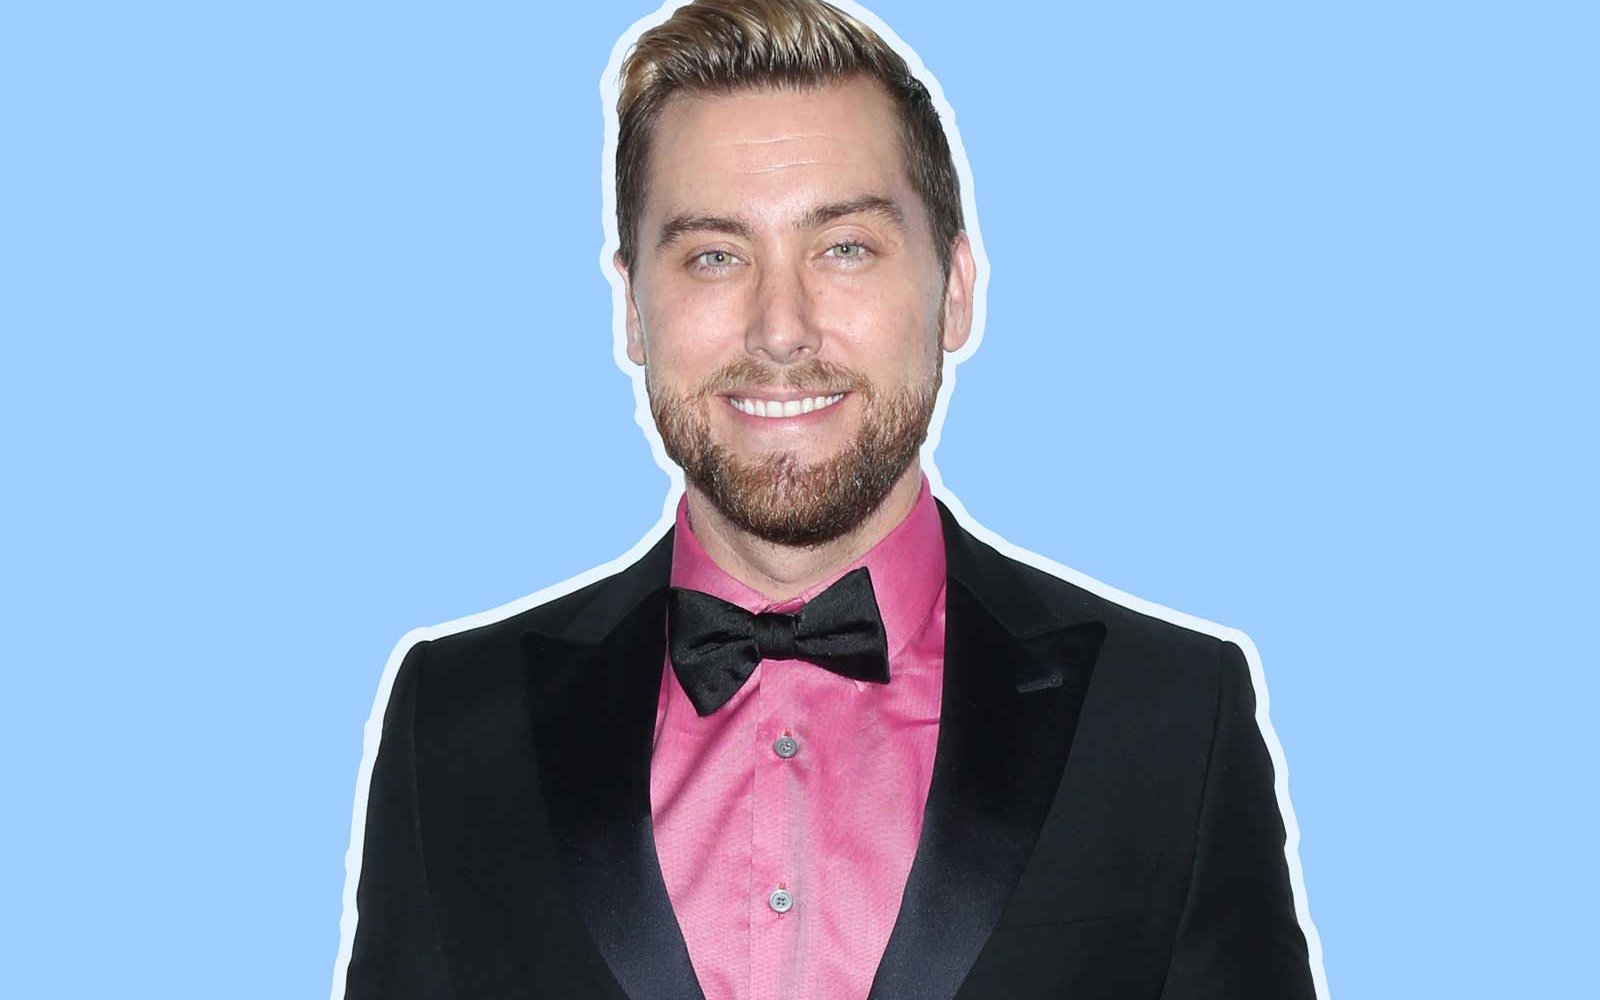 Singer Lance Bass attends the 2nd annual Vanderpump Dog Foundation Gala at Taglyan Cultural Complex on November 9, 2017 in Hollywood, California.